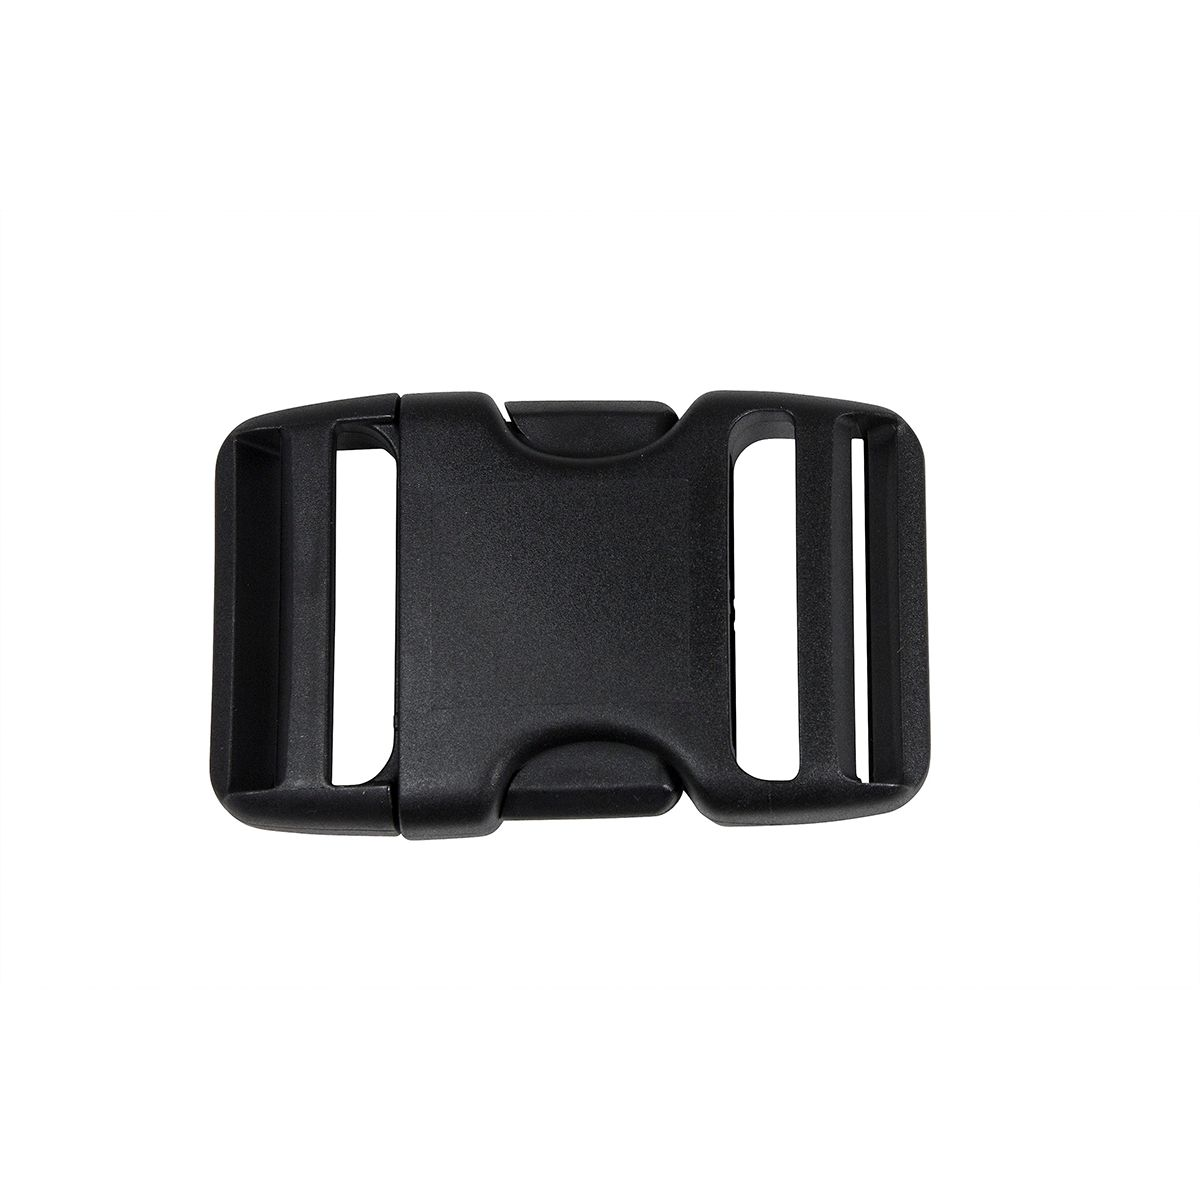 ORTLIEB Buckle 40 mm for Bike-Tourer | item_misc